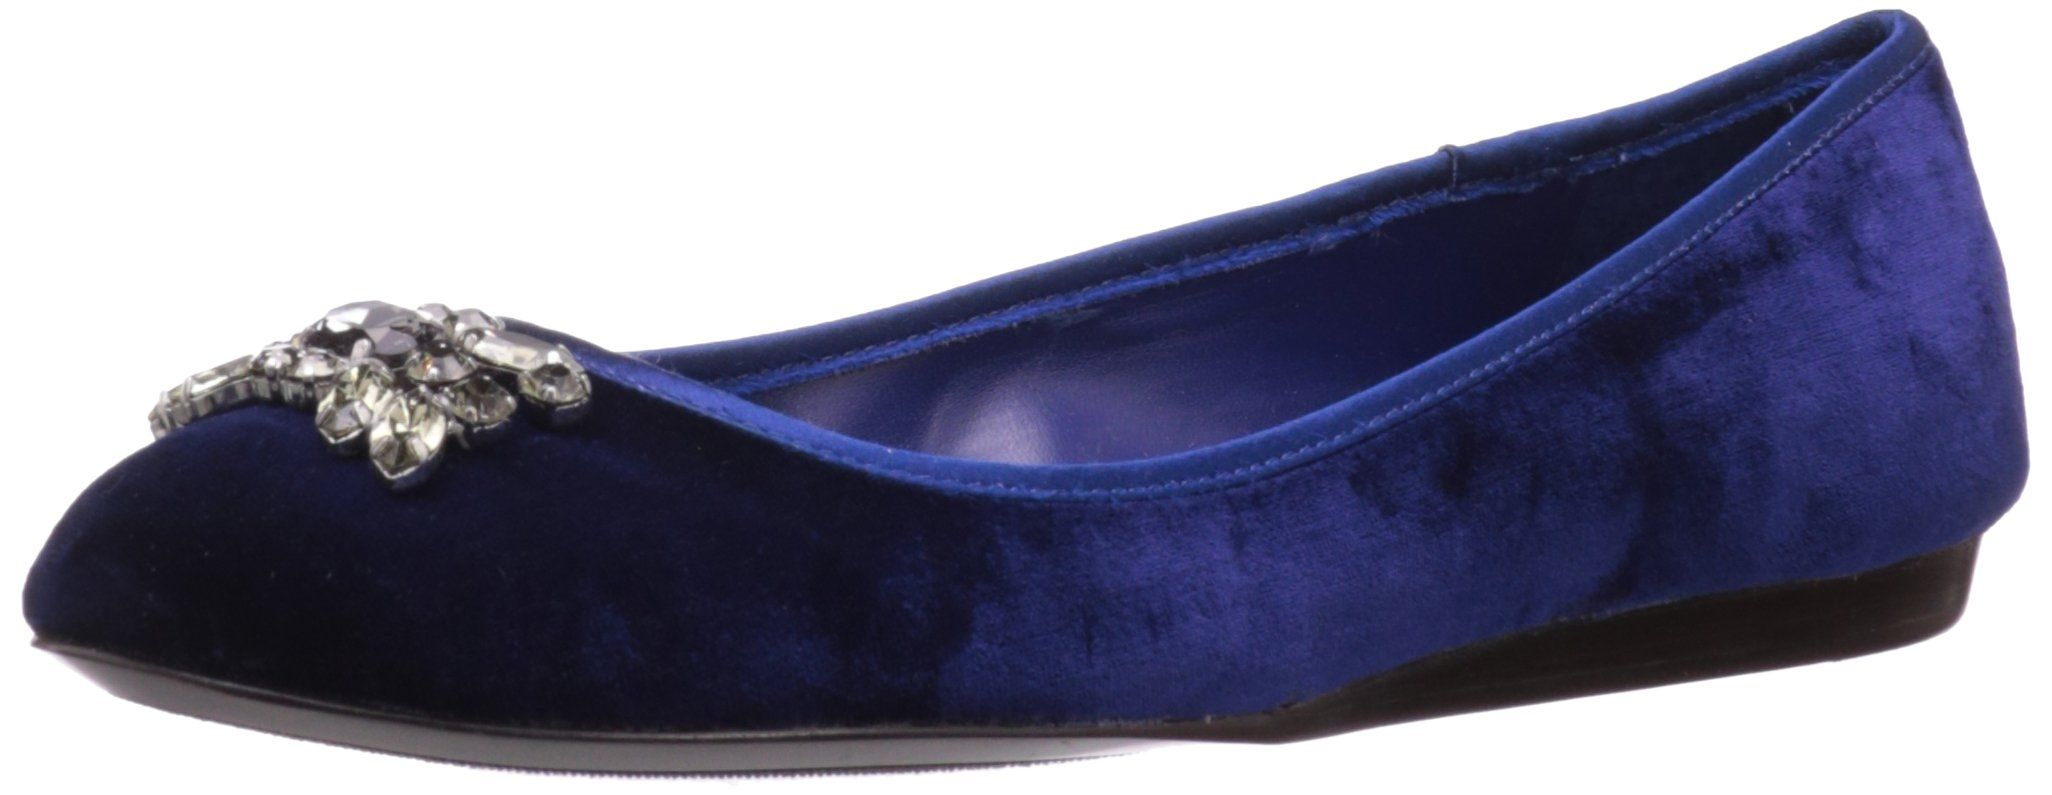 """Lauren Ralph Lauren Women's Adelisa Flat,Dark Sapphire,8 B US. Round closed toe slip-on ballet flat. Velvet upper with rhinestone detail on vamp. Slip-on construction with leather top-line. Leather lining; lightly padded footbed. Approx. 1/2"""" wedge heel; rubber outsole."""